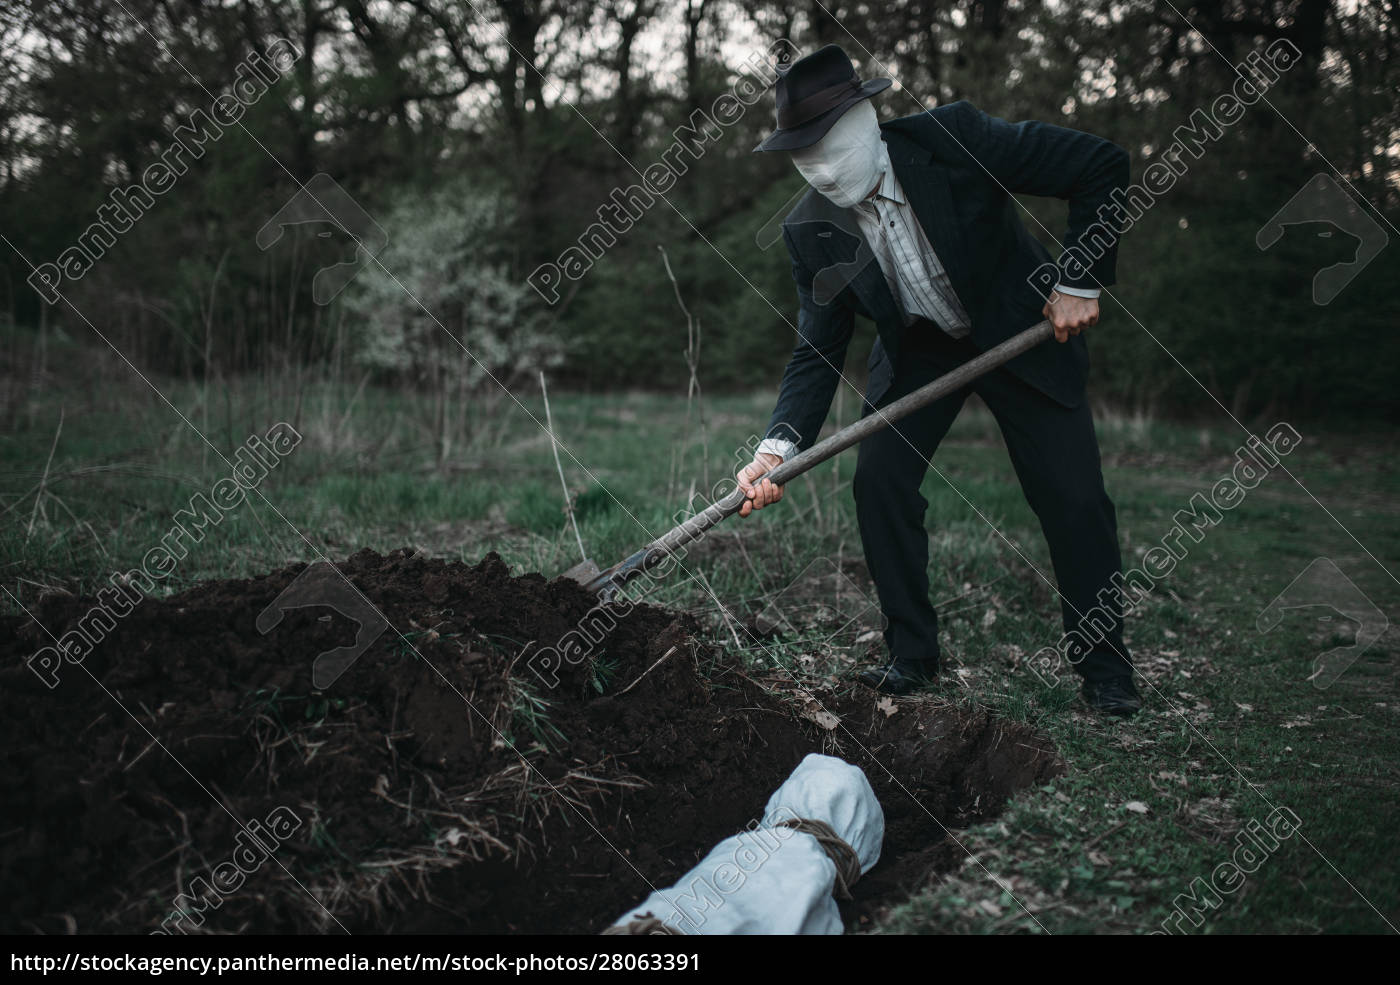 bloody, murderer, is, digging, a, grave - 28063391